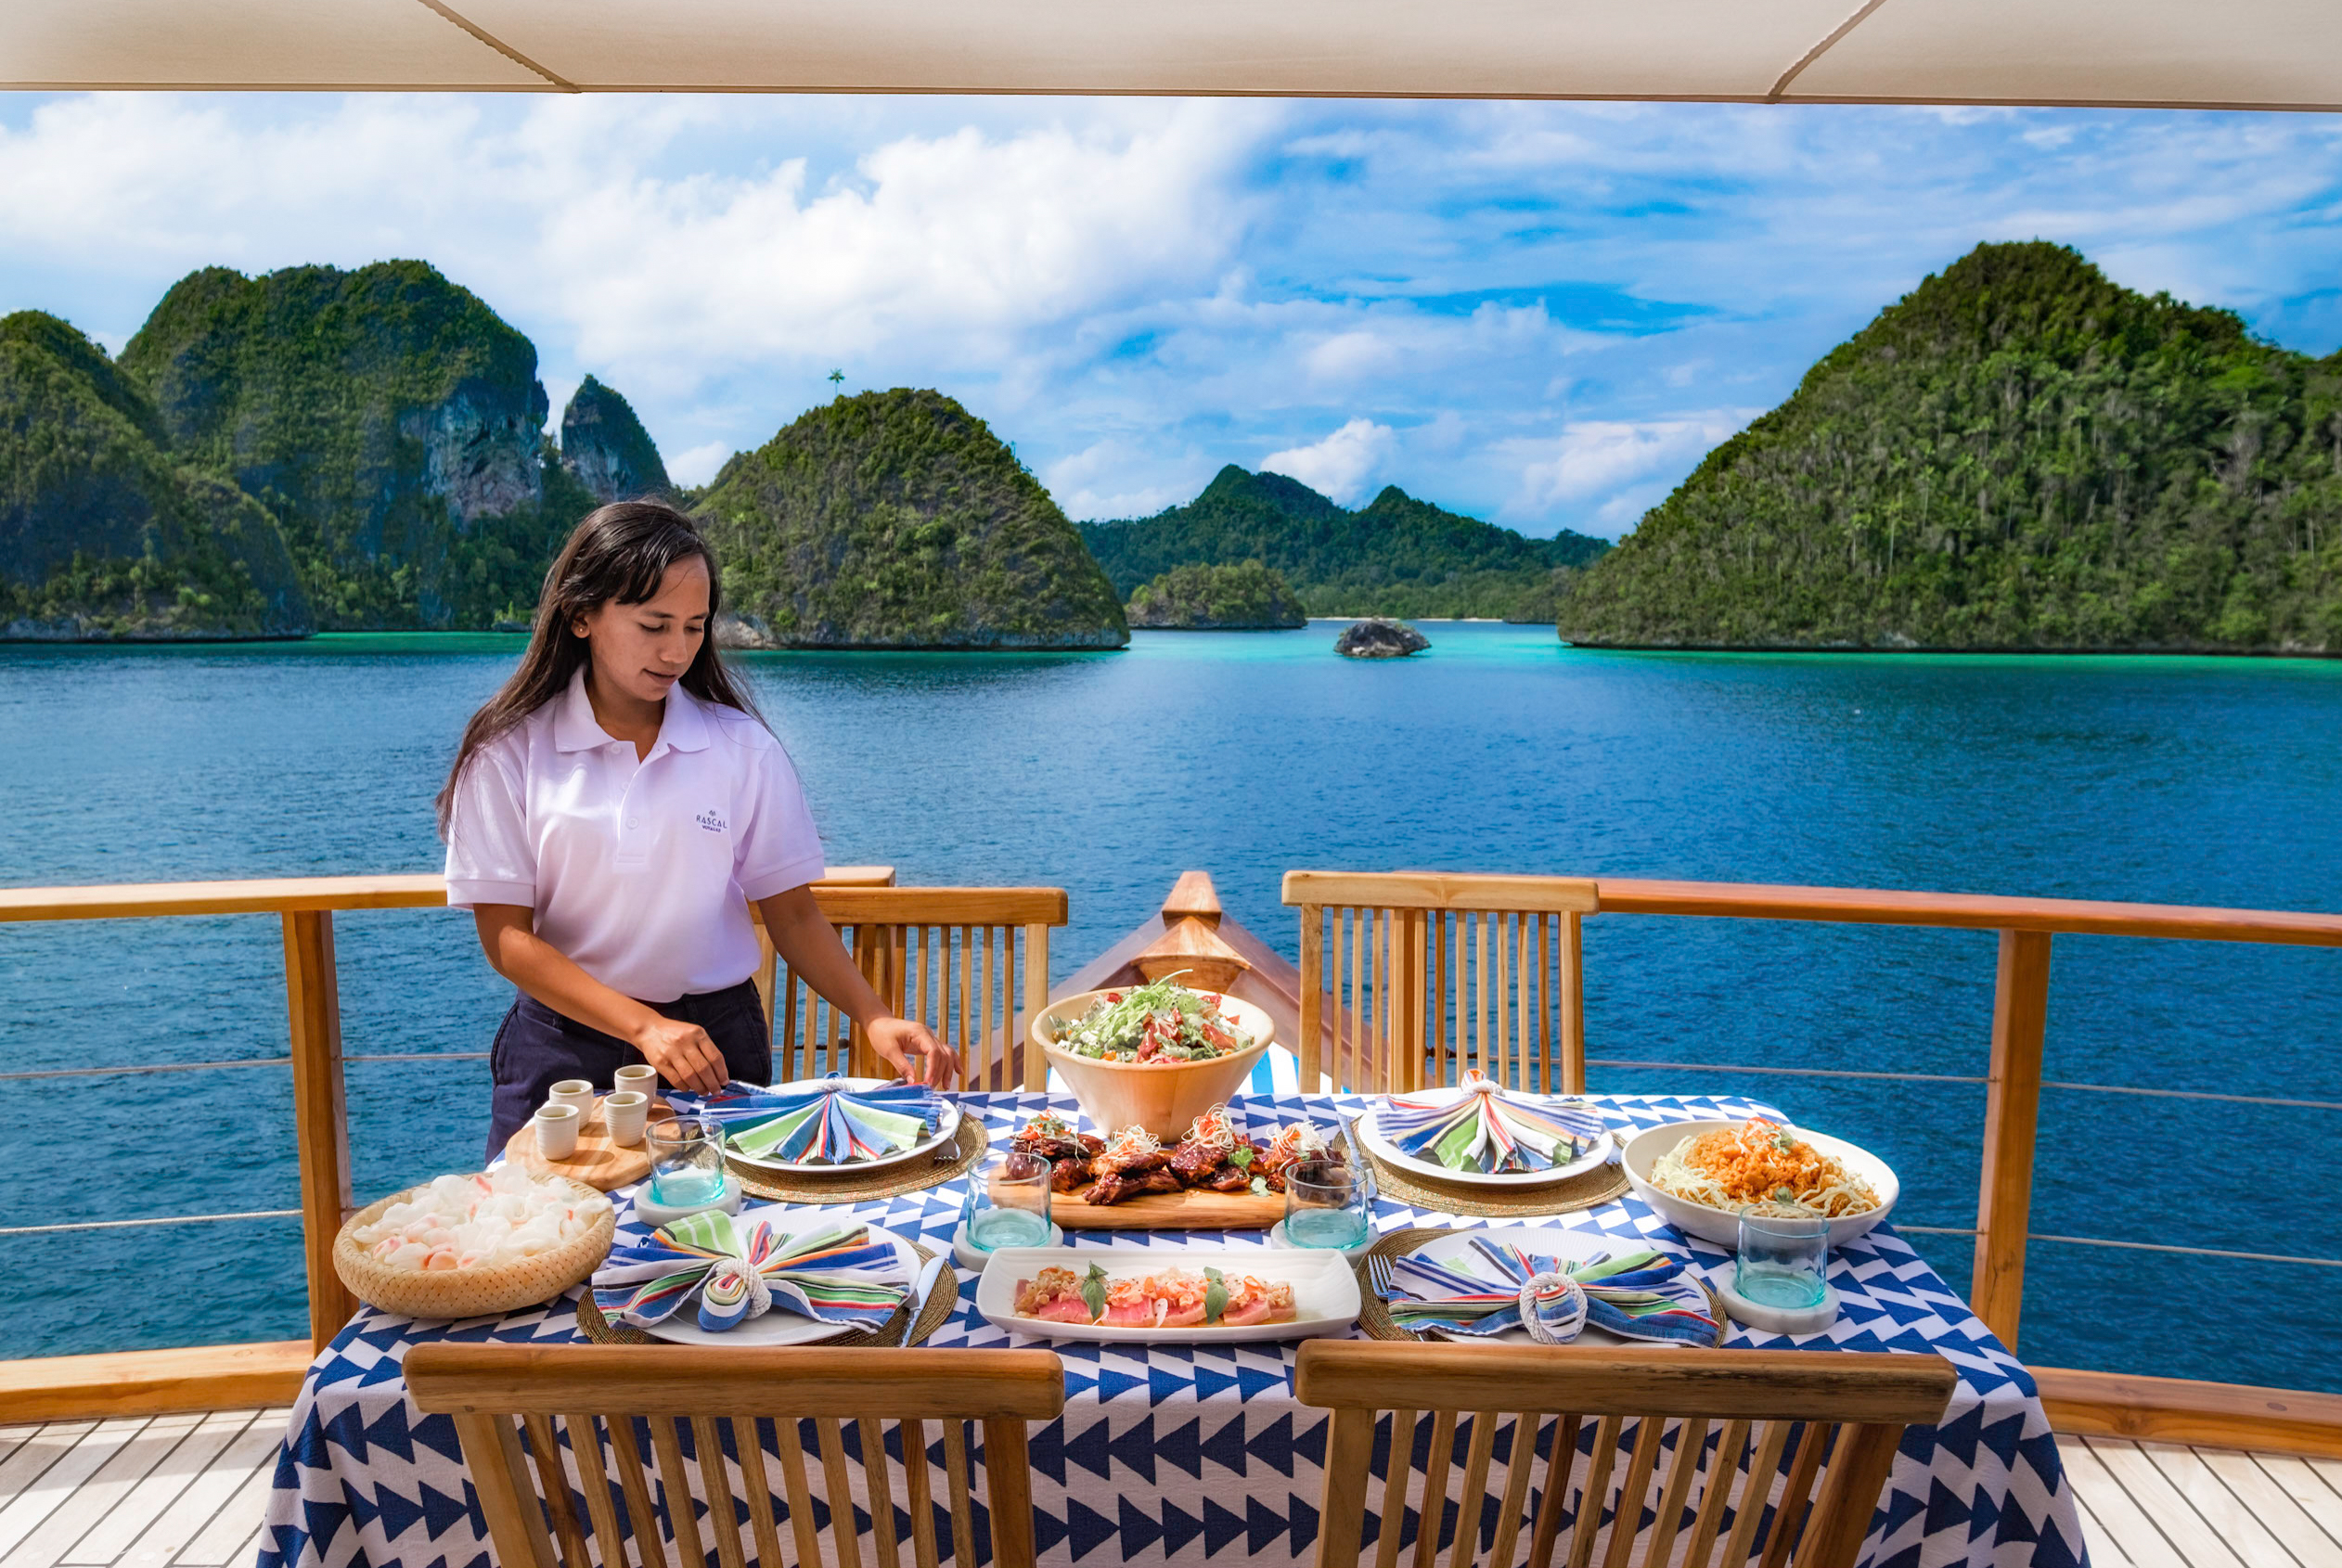 stewardess sets the table on aft deck of yacht in Indonesia